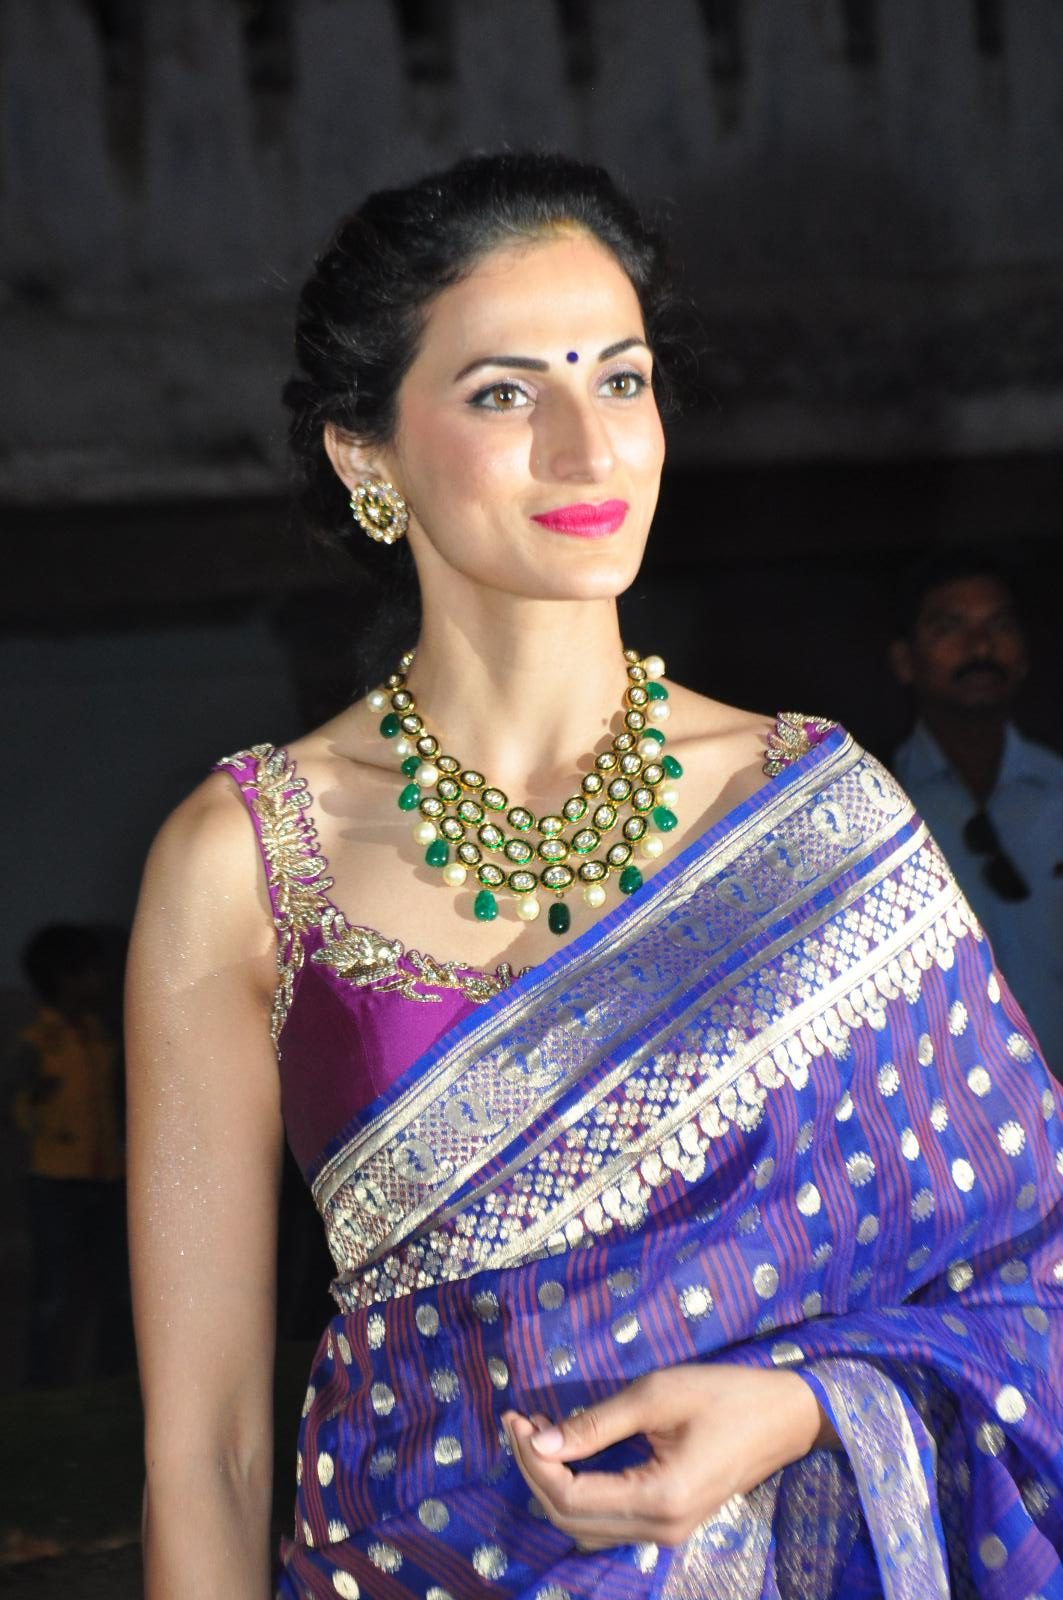 shilpa reddy Brand New Photo Stills of Beautiful Shilpa Reddy | Fashion | Modelling Shilpa Reddy 137 e1485253452128